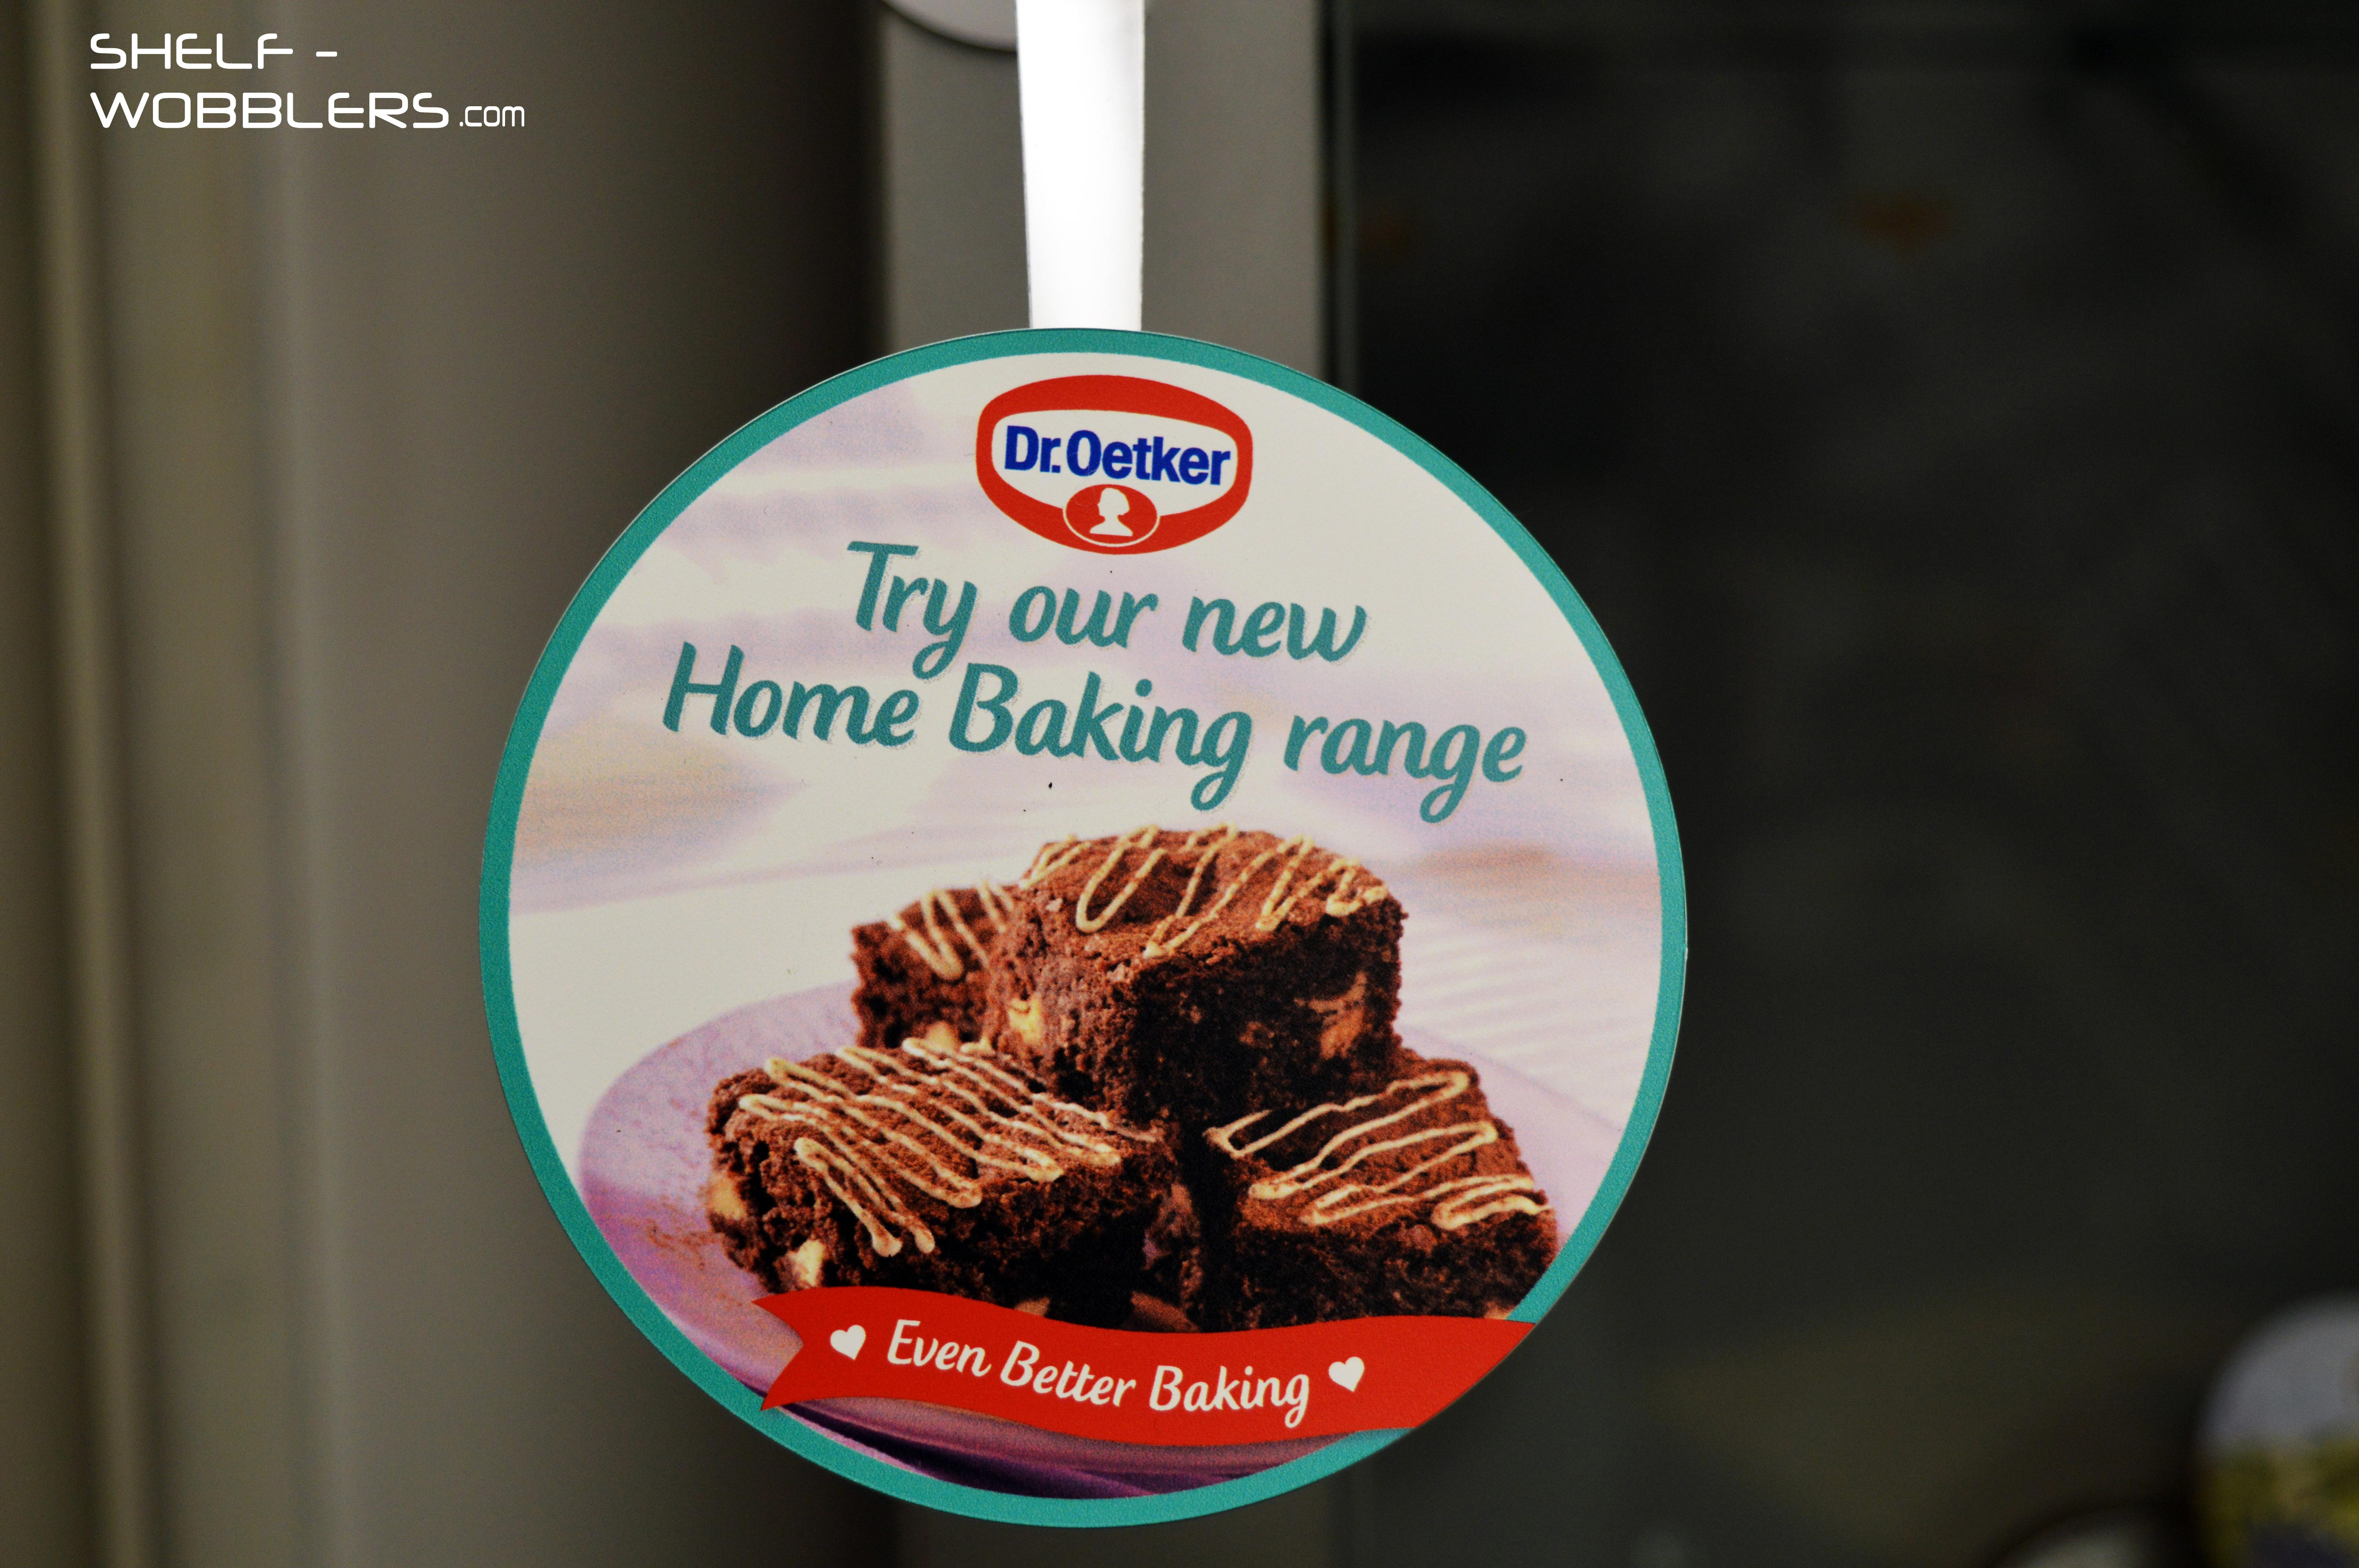 Dr.Oetker-Retail-Shelf-Wobblers